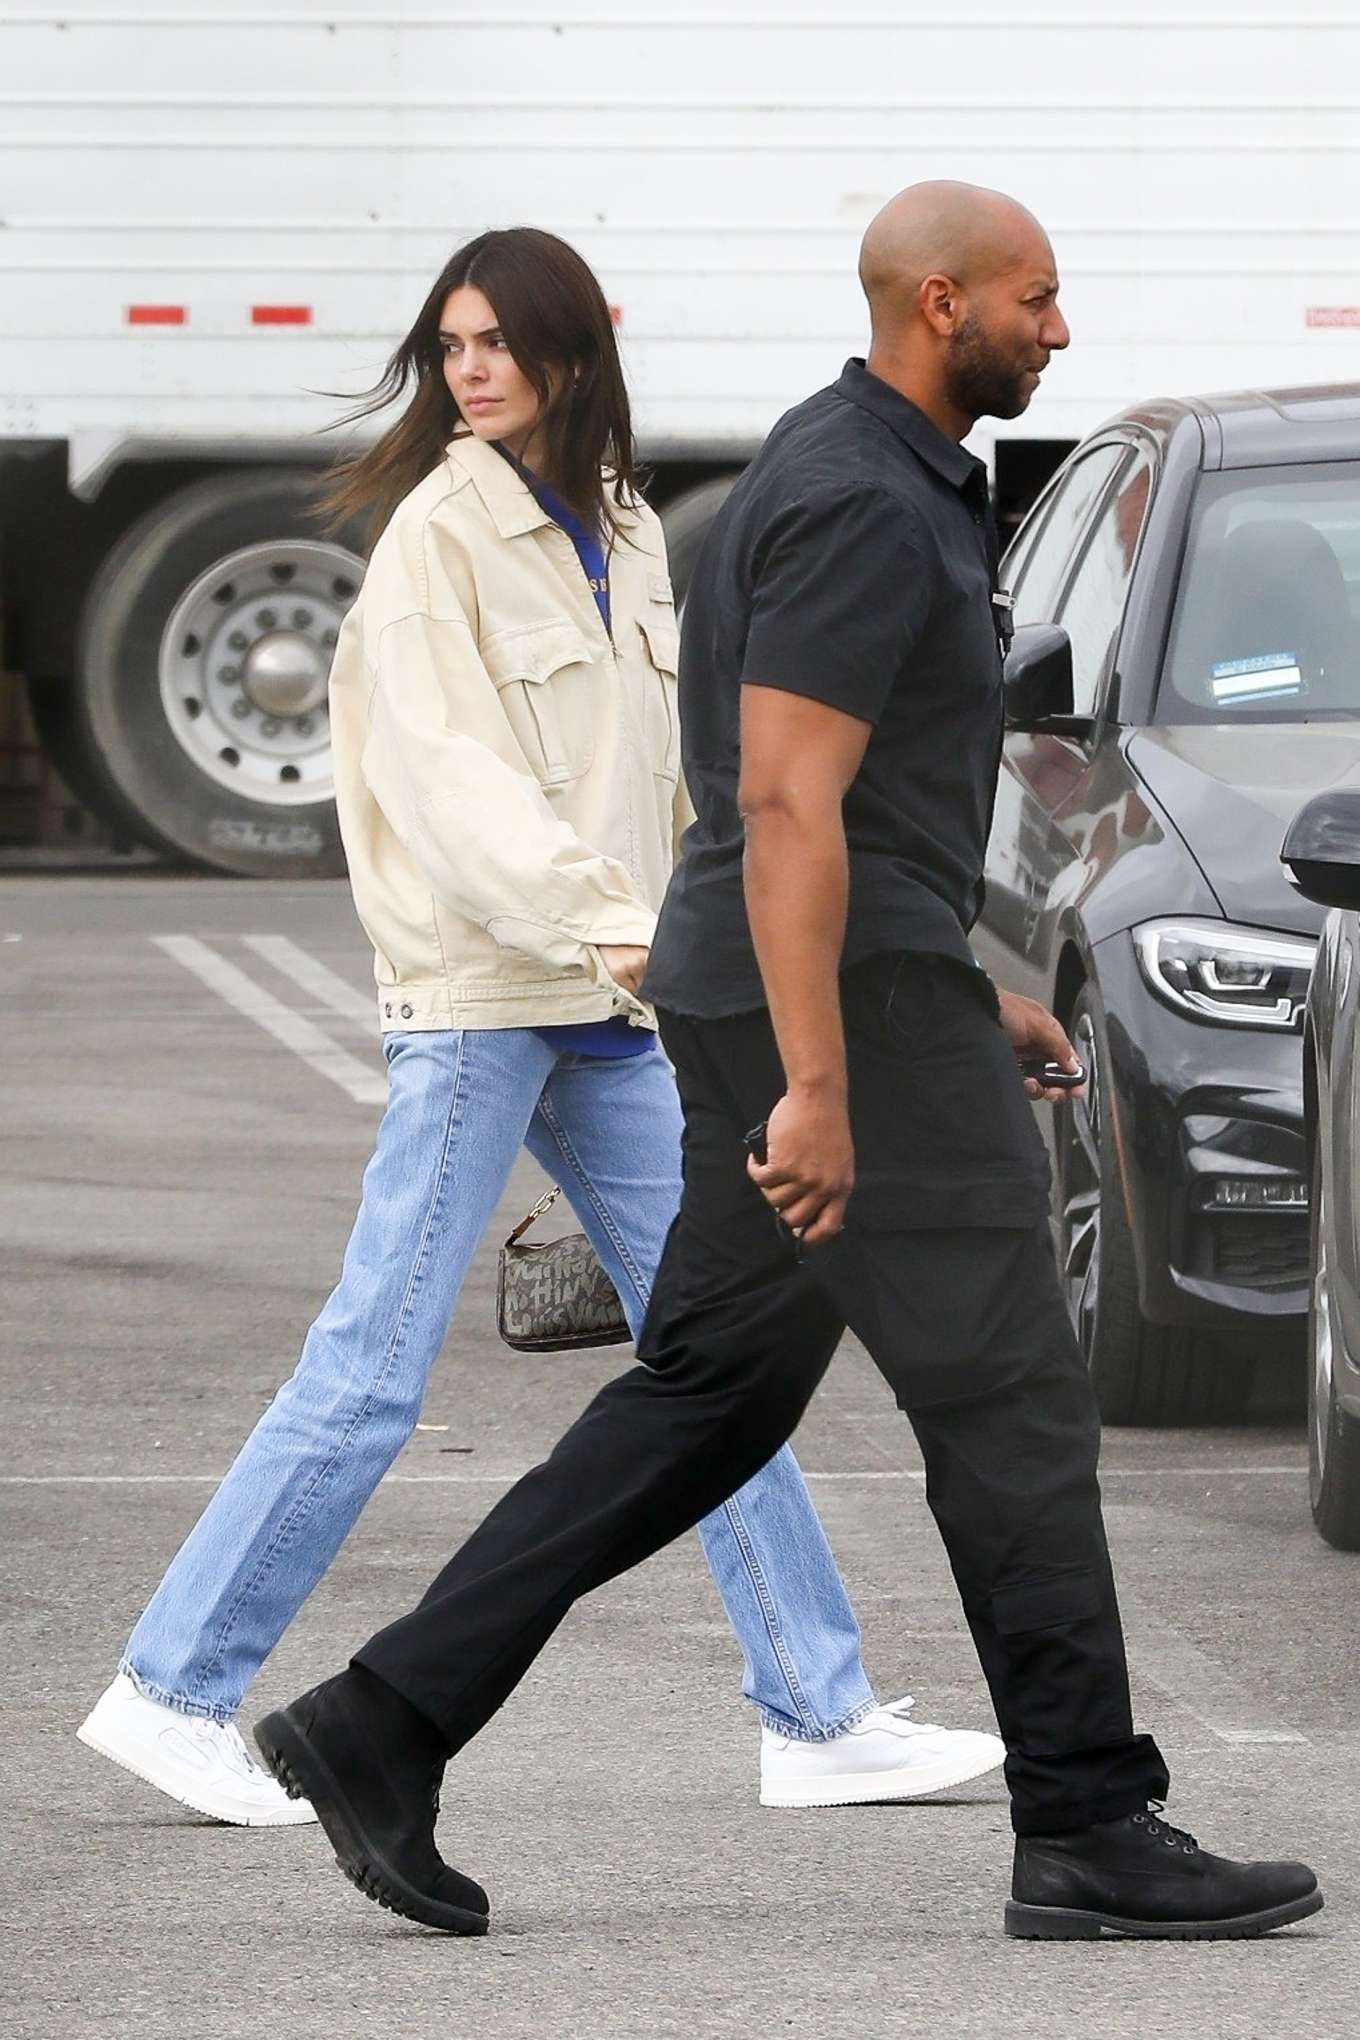 Kendall Jenner wearing side-striped white Adidas lace-up sneakers